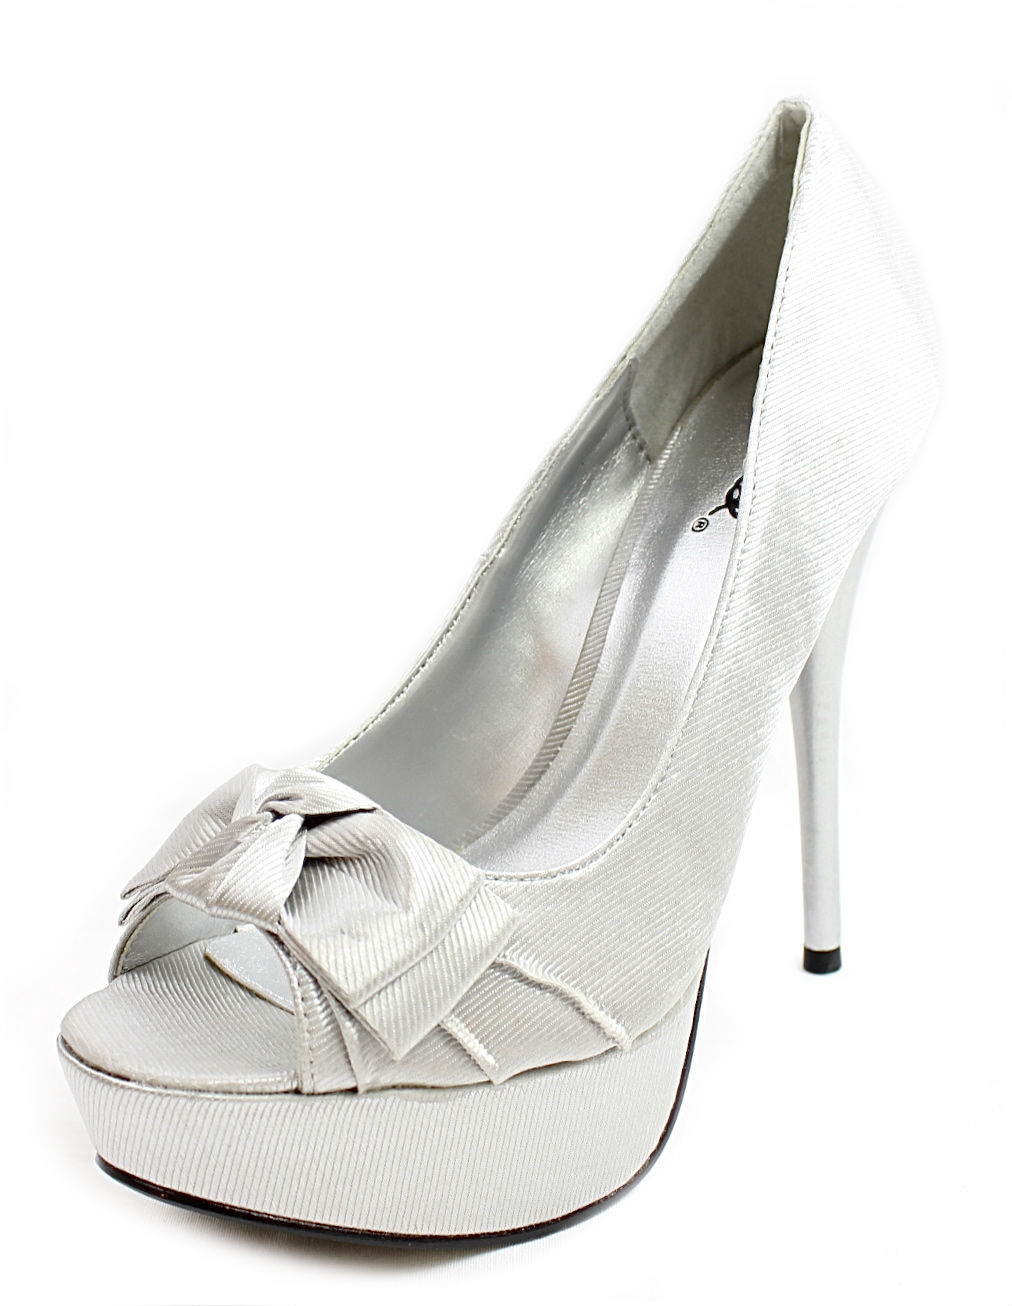 Qupid Nuetral-10 Satin Dress Platform Pumps -1495